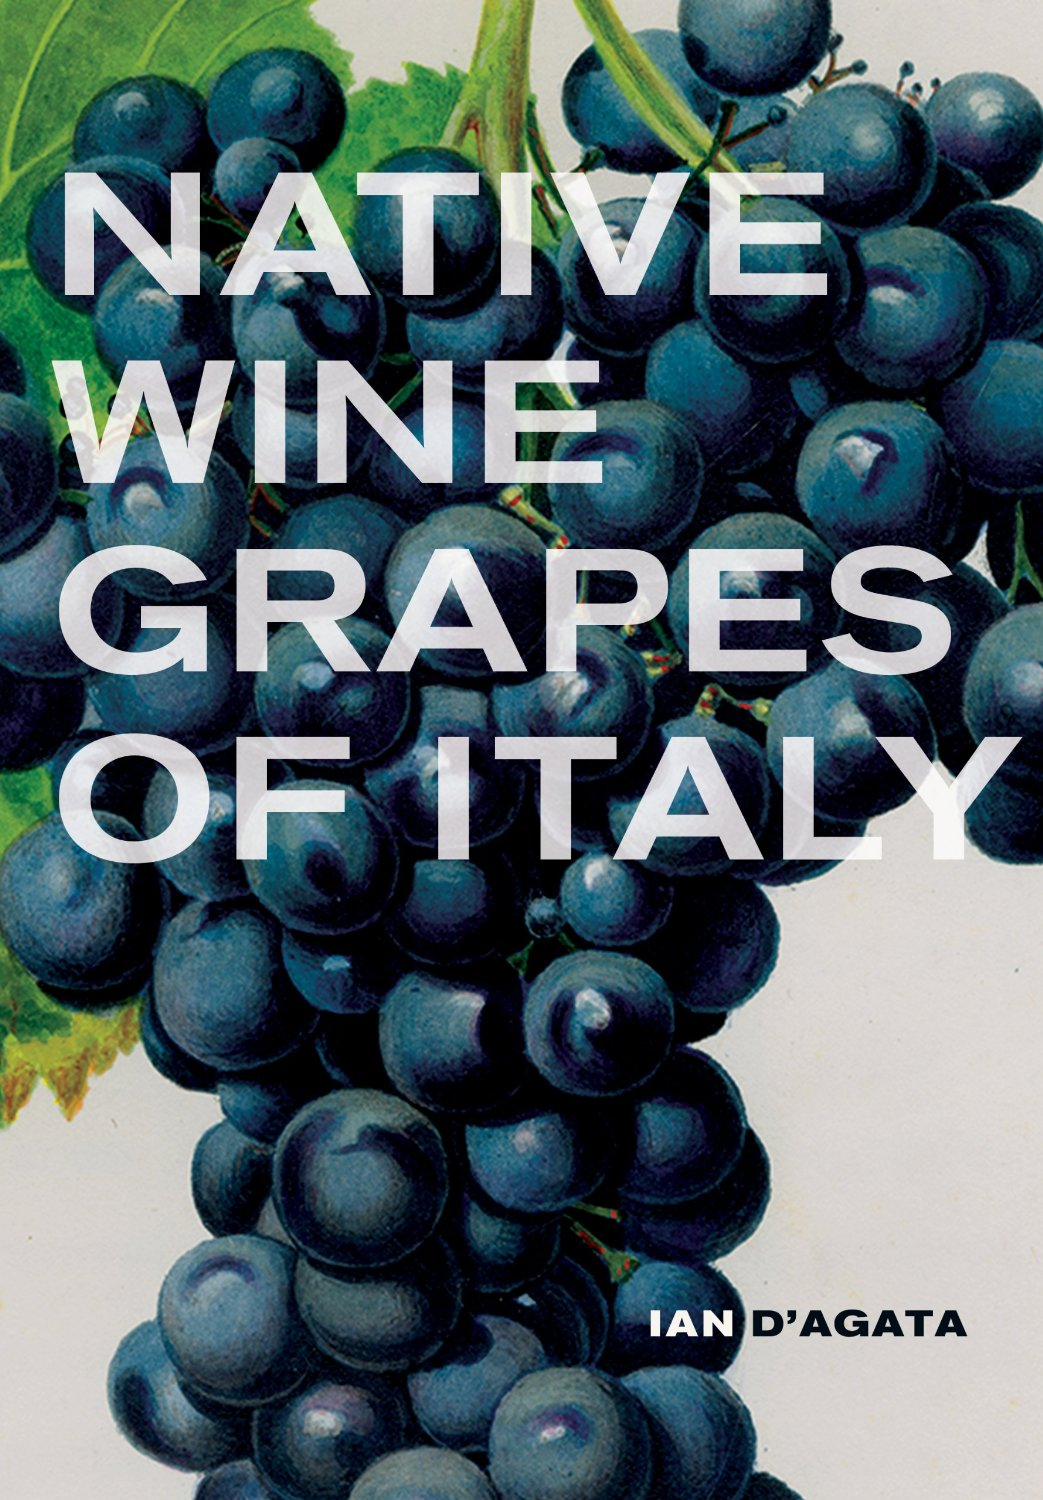 Native Wine Grapes Of Italy D'Agata